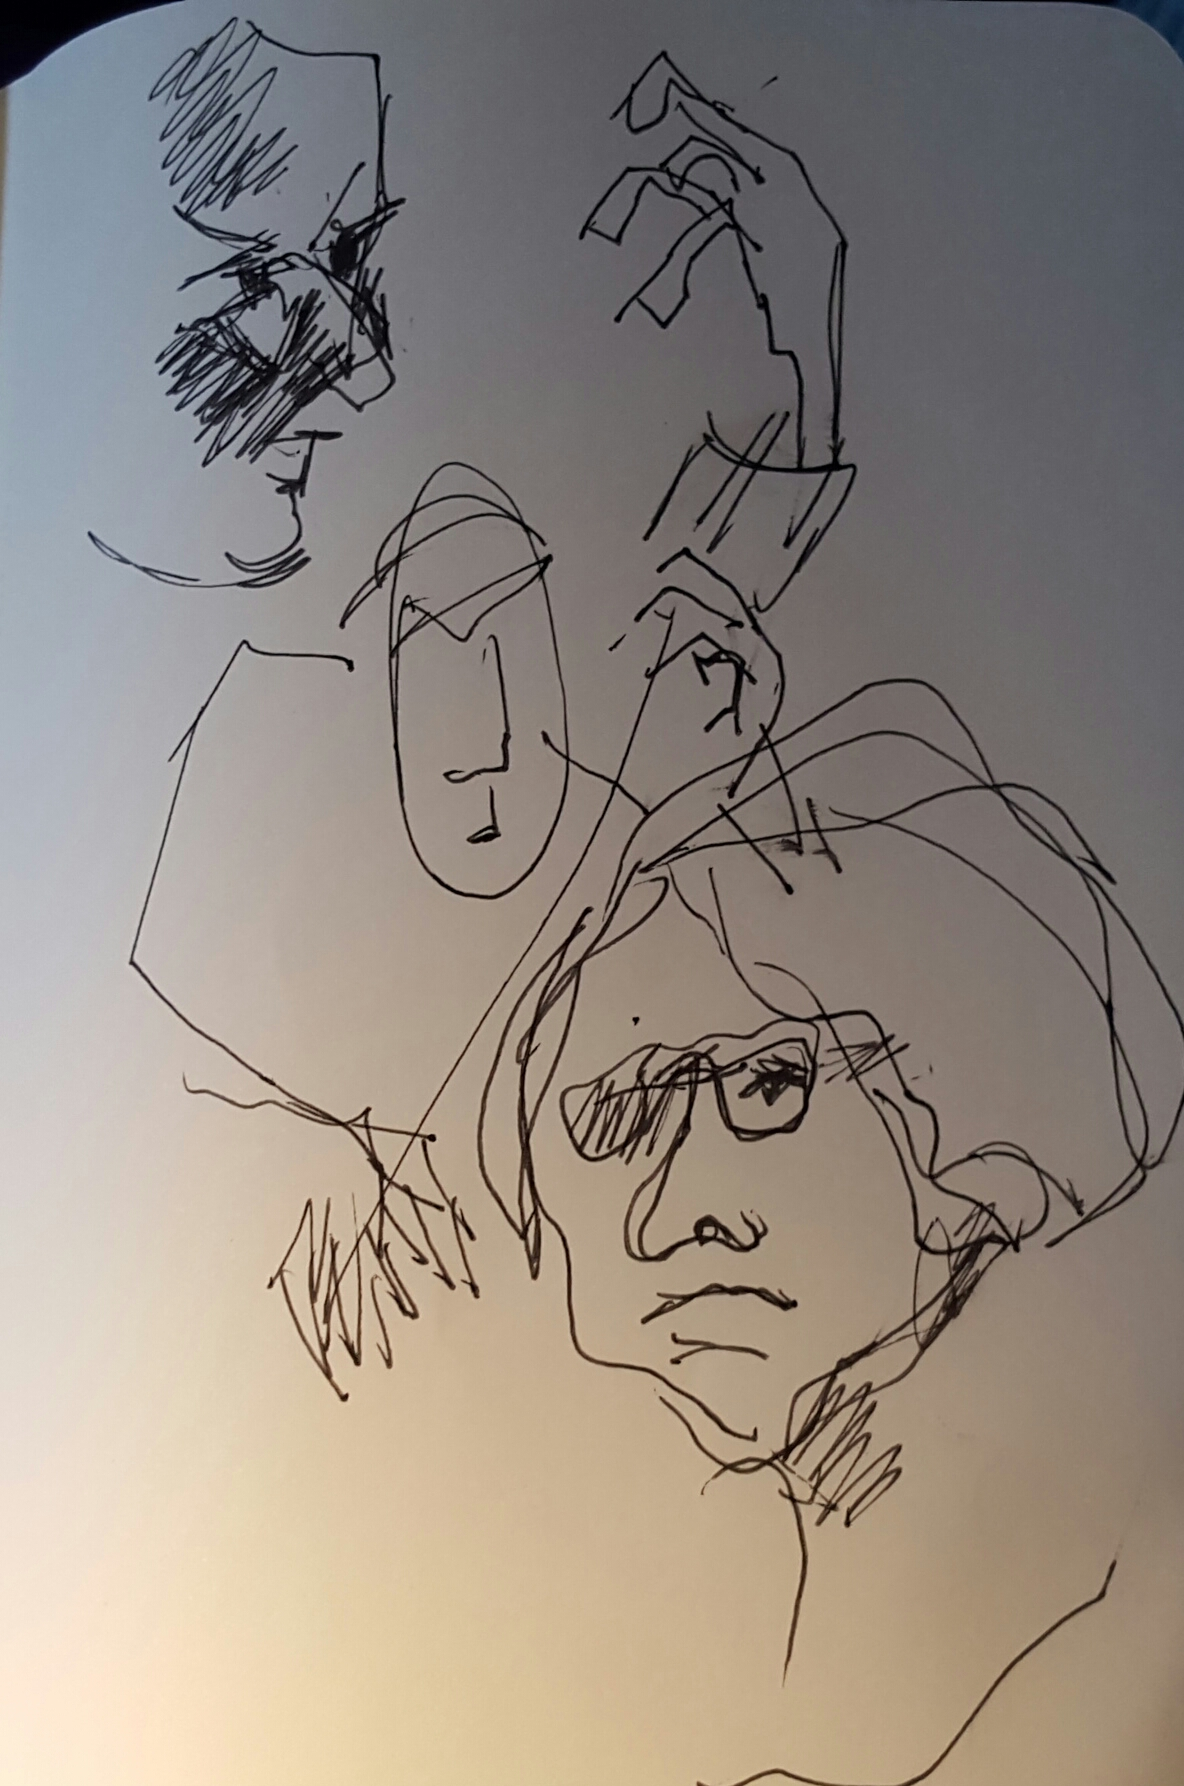 Sketch of musicians in jazz club